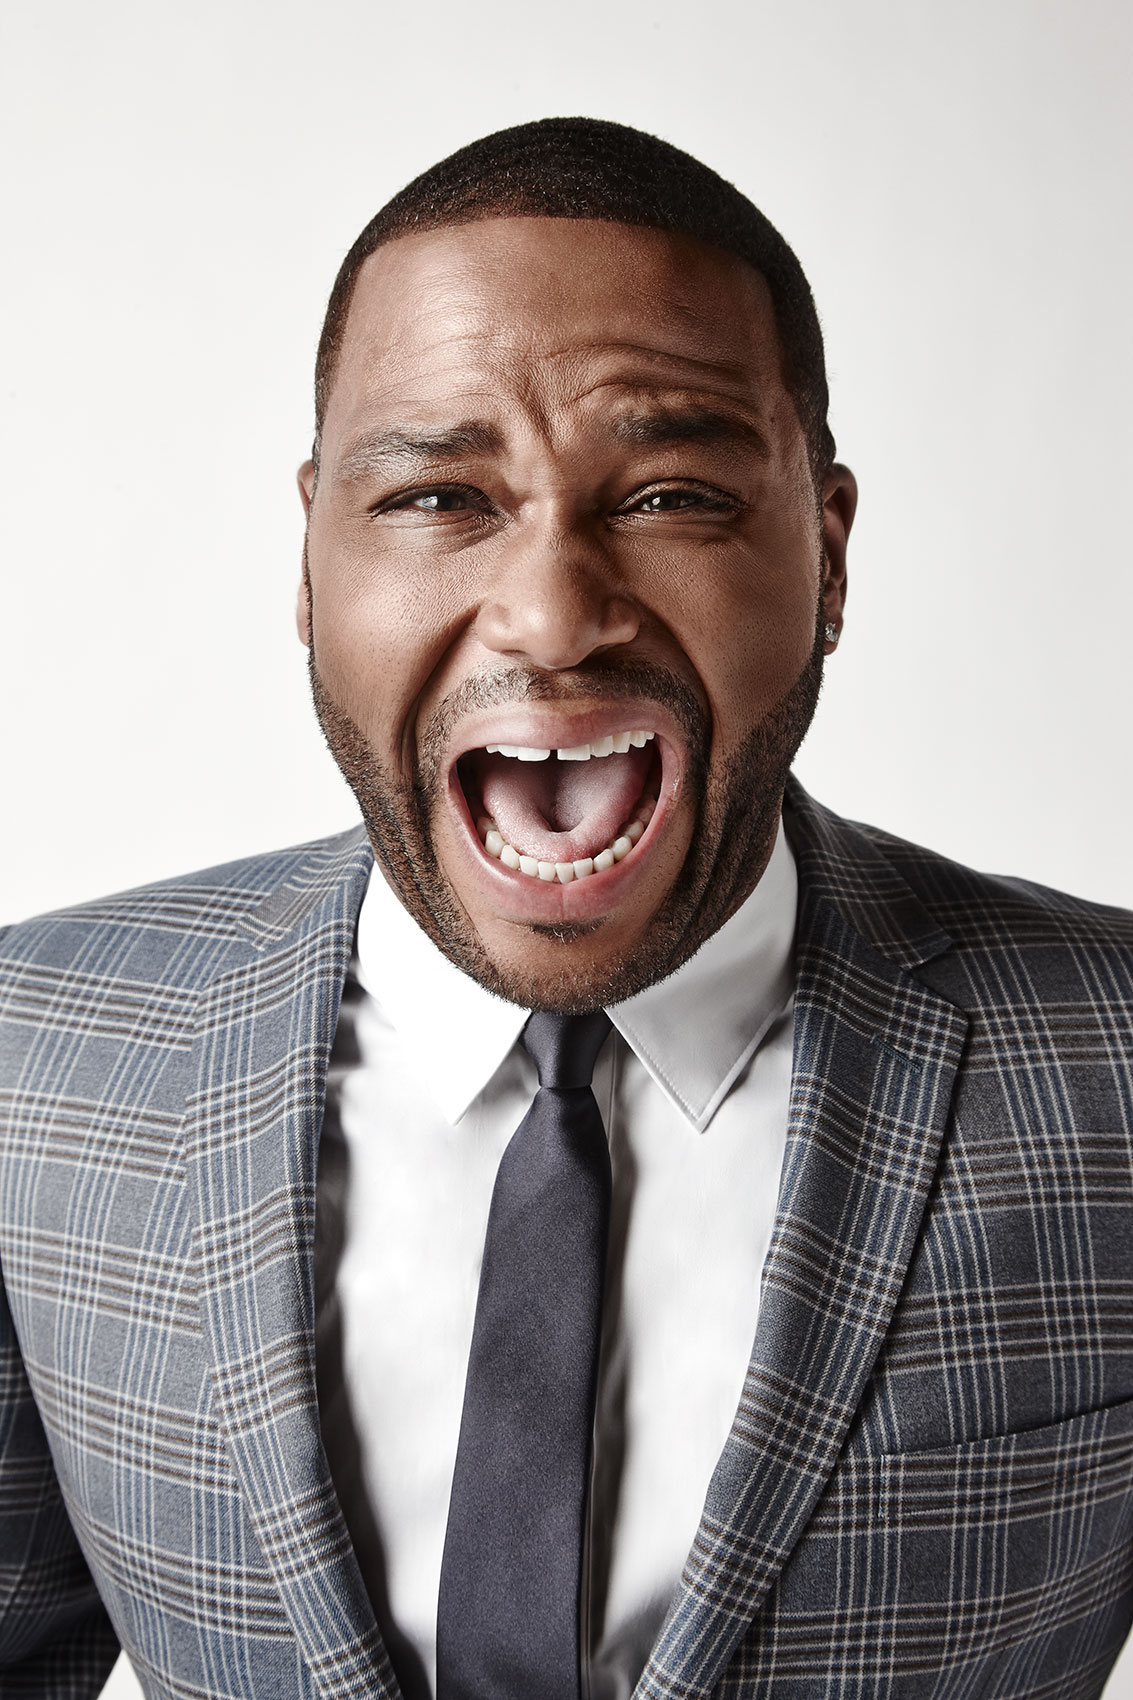 EMMY_Anthony_Anderson_SH02_0257